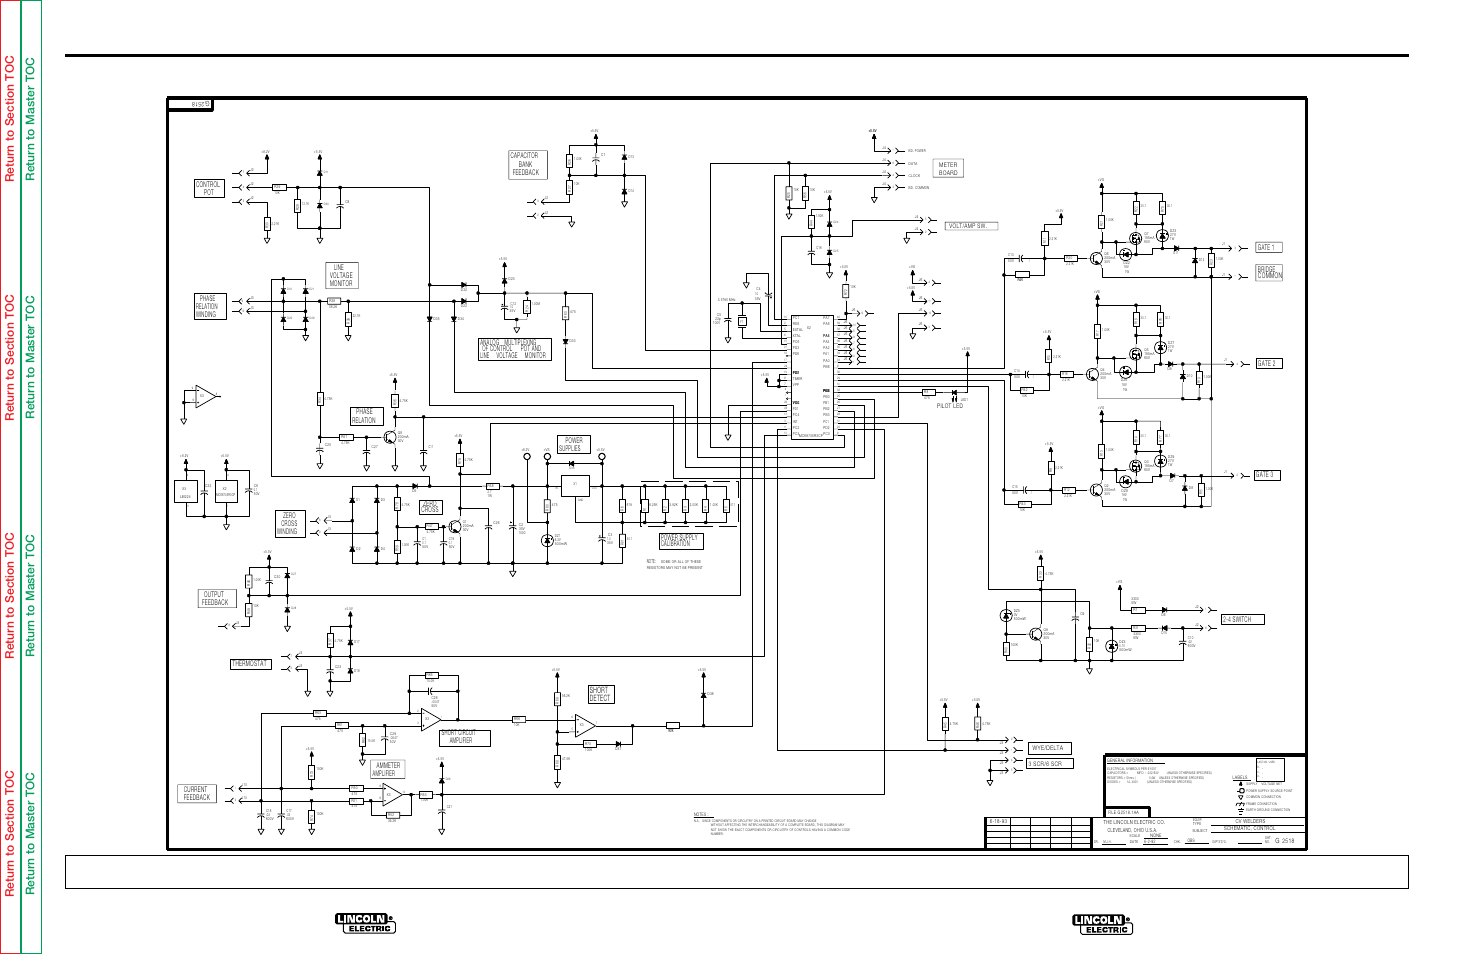 electrical diagrams, l8930 control pc board schematic, detect short | lincoln  electric idealarc cv-300 user manual | page 95 / 112 | original mode  manuals directory